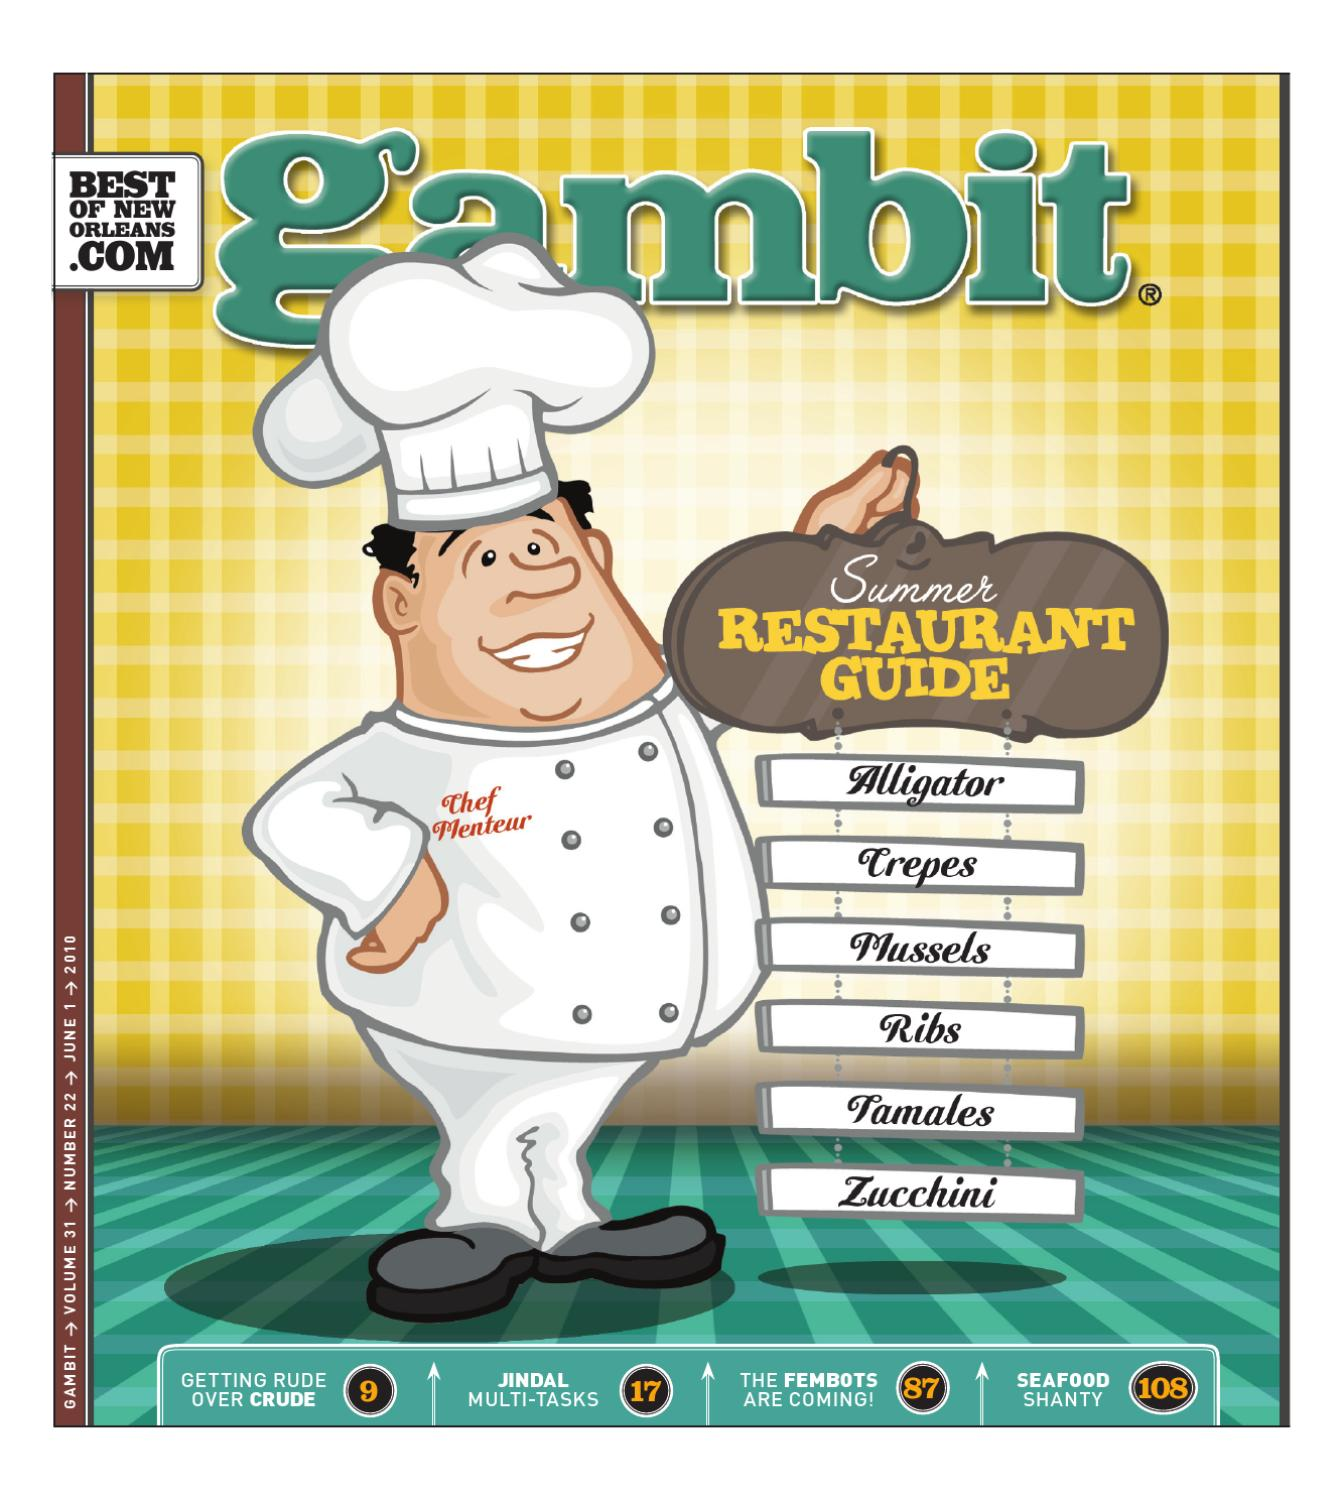 Gambits Summer Restaurant Guide By Gambit New Orleans Issuu Dance Steps Diagram Argentine Tango Alfredo Melendez39s Blog